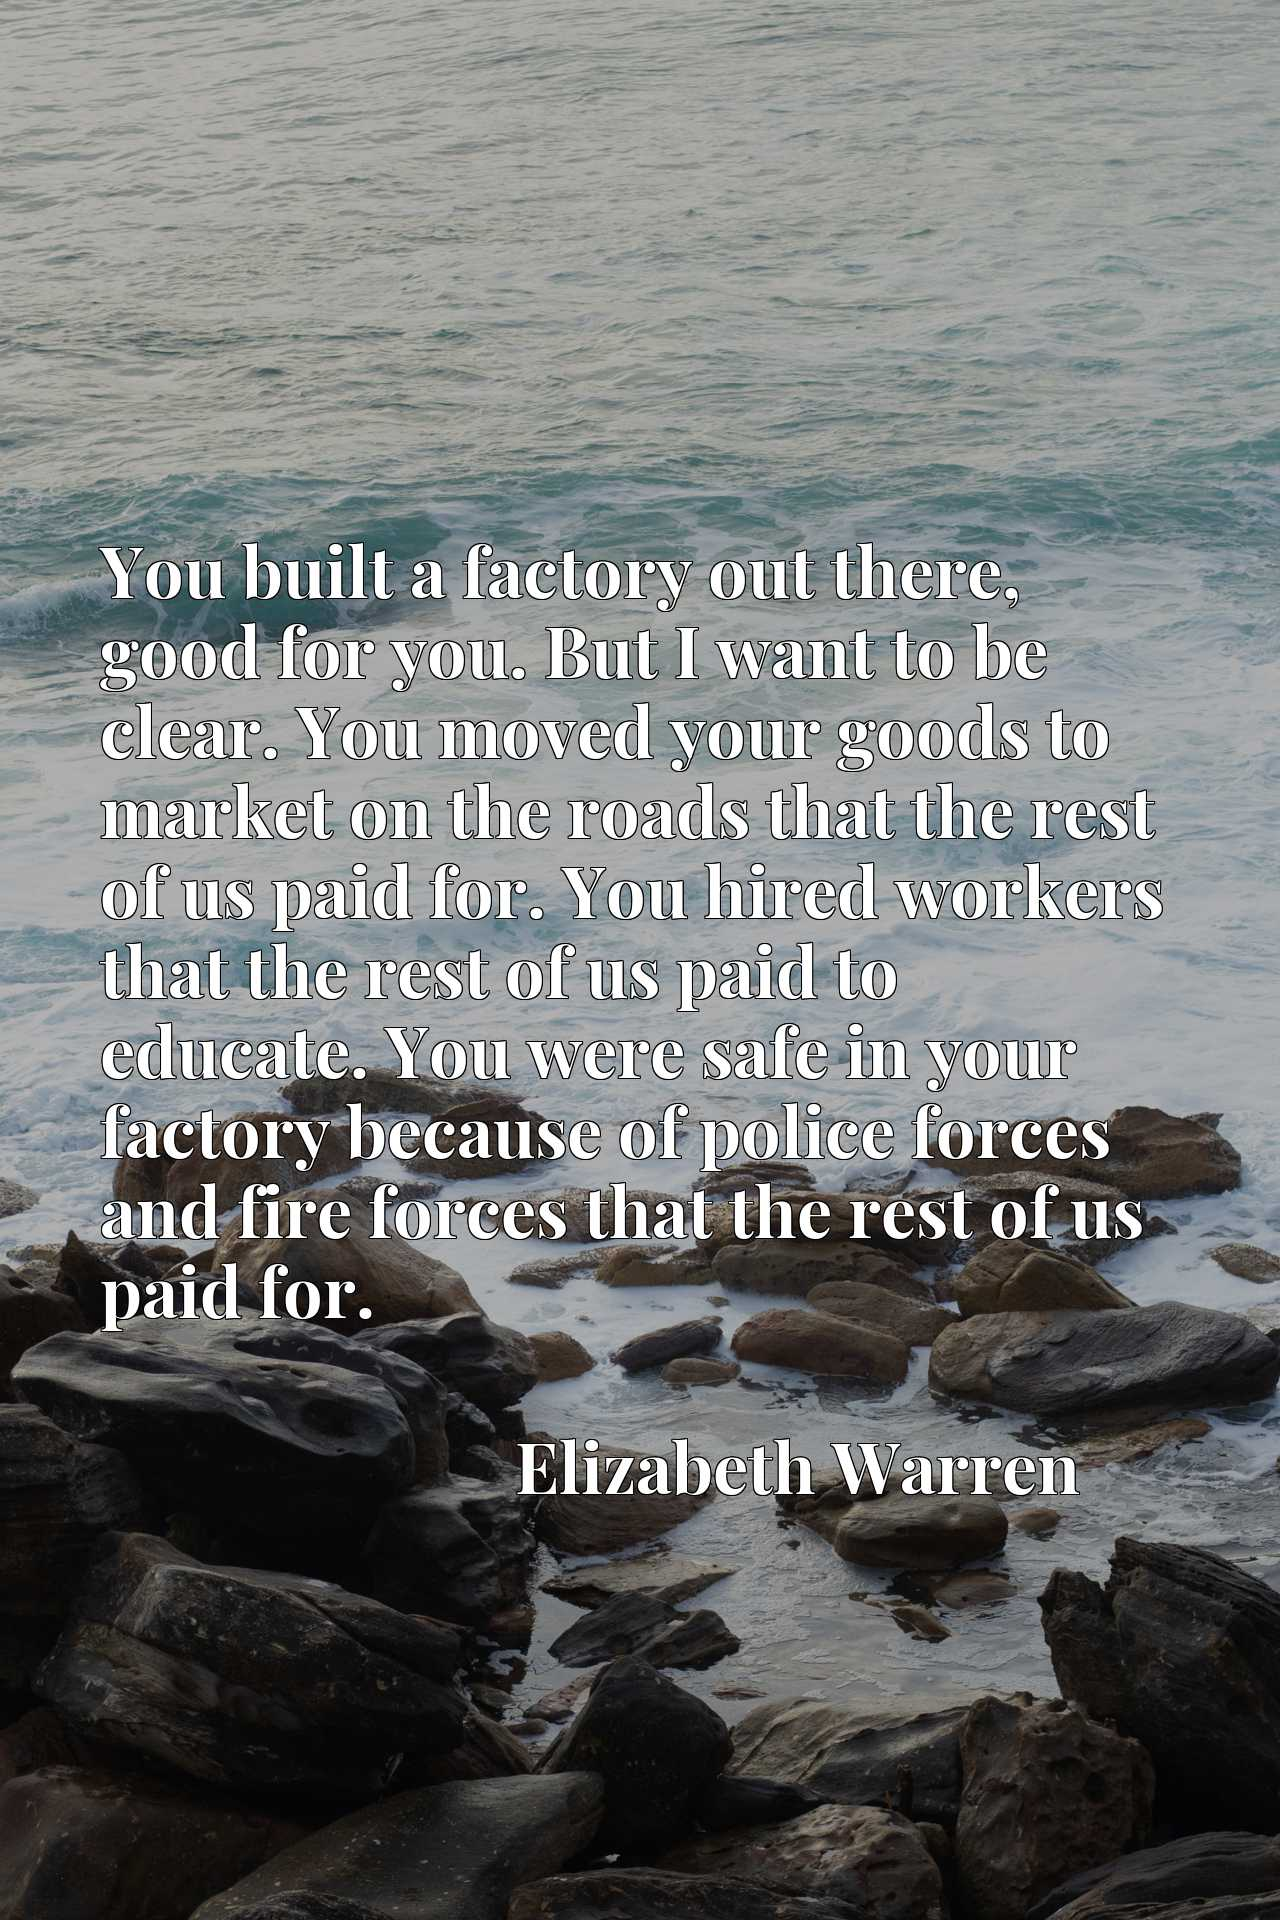 You built a factory out there, good for you. But I want to be clear. You moved your goods to market on the roads that the rest of us paid for. You hired workers that the rest of us paid to educate. You were safe in your factory because of police forces and fire forces that the rest of us paid for.